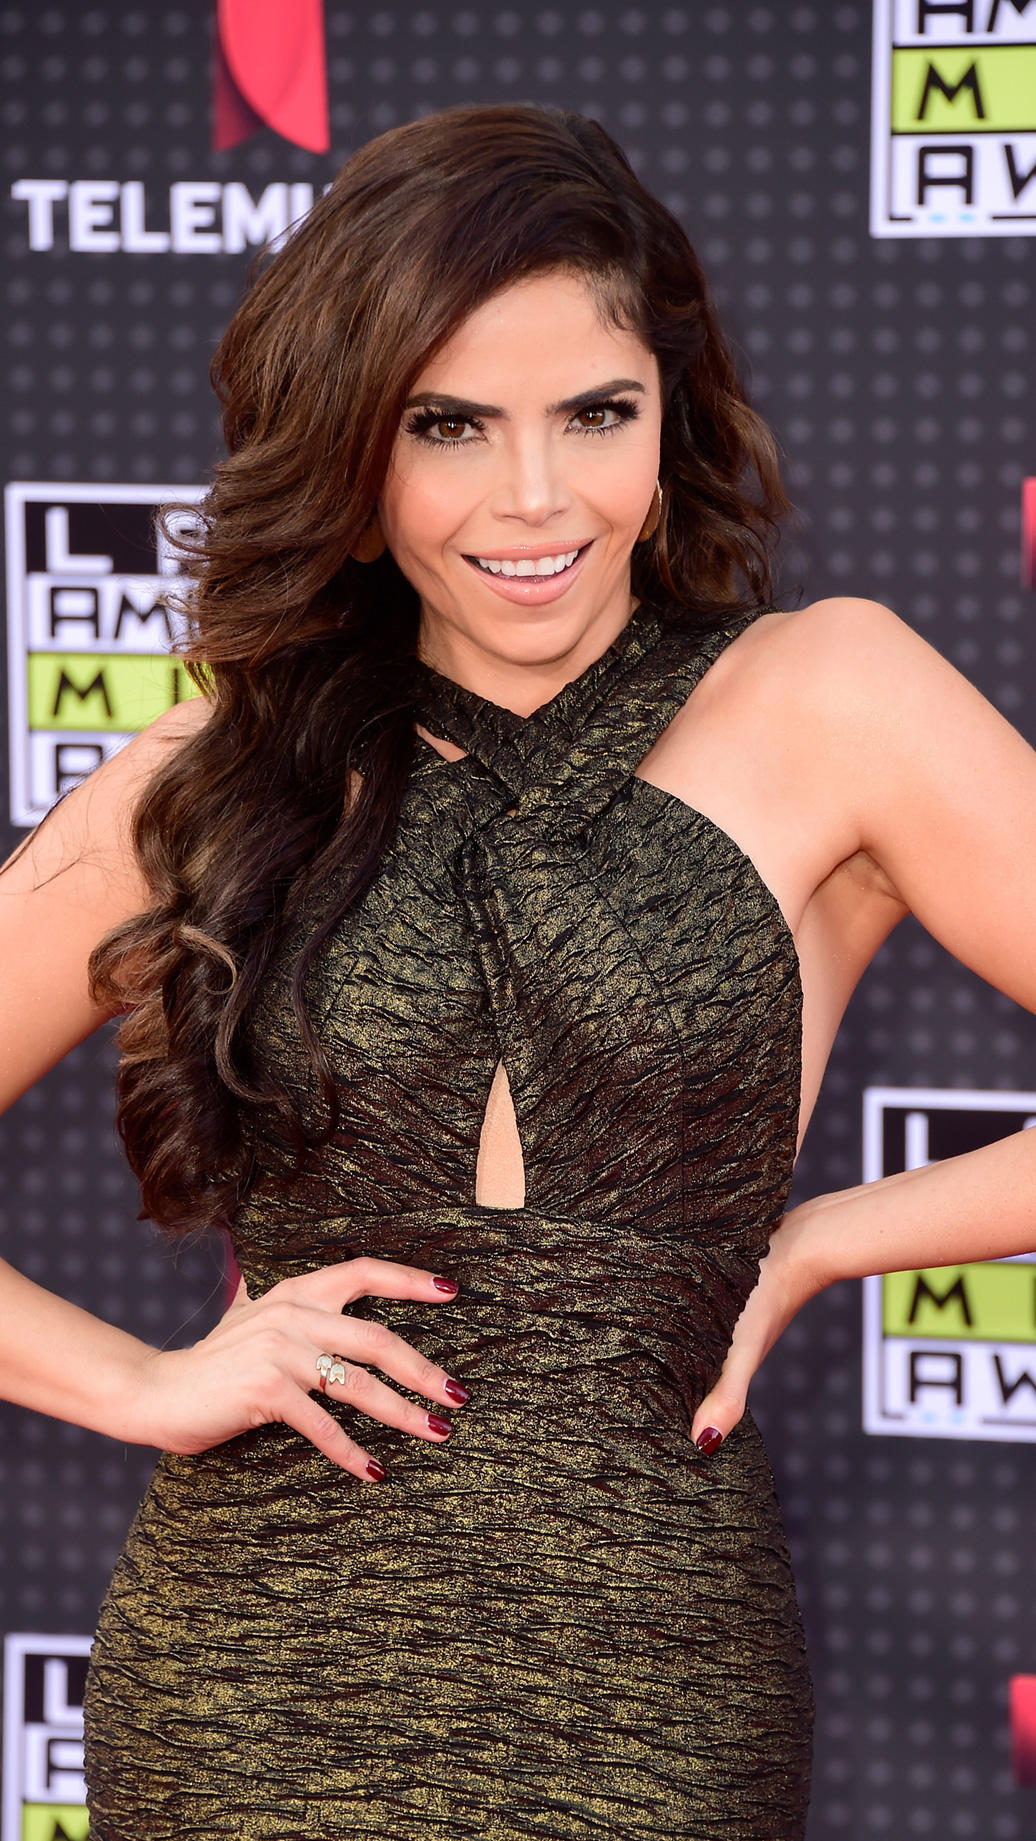 HOLLYWOOD, CA - OCTOBER 08:  Yarel Ramos attends Telemundo's Latin American Music Awards at the Dolby Theatre on October 8, 2015 in Hollywood, California.  (Photo by Frazer Harrison/Getty Images)